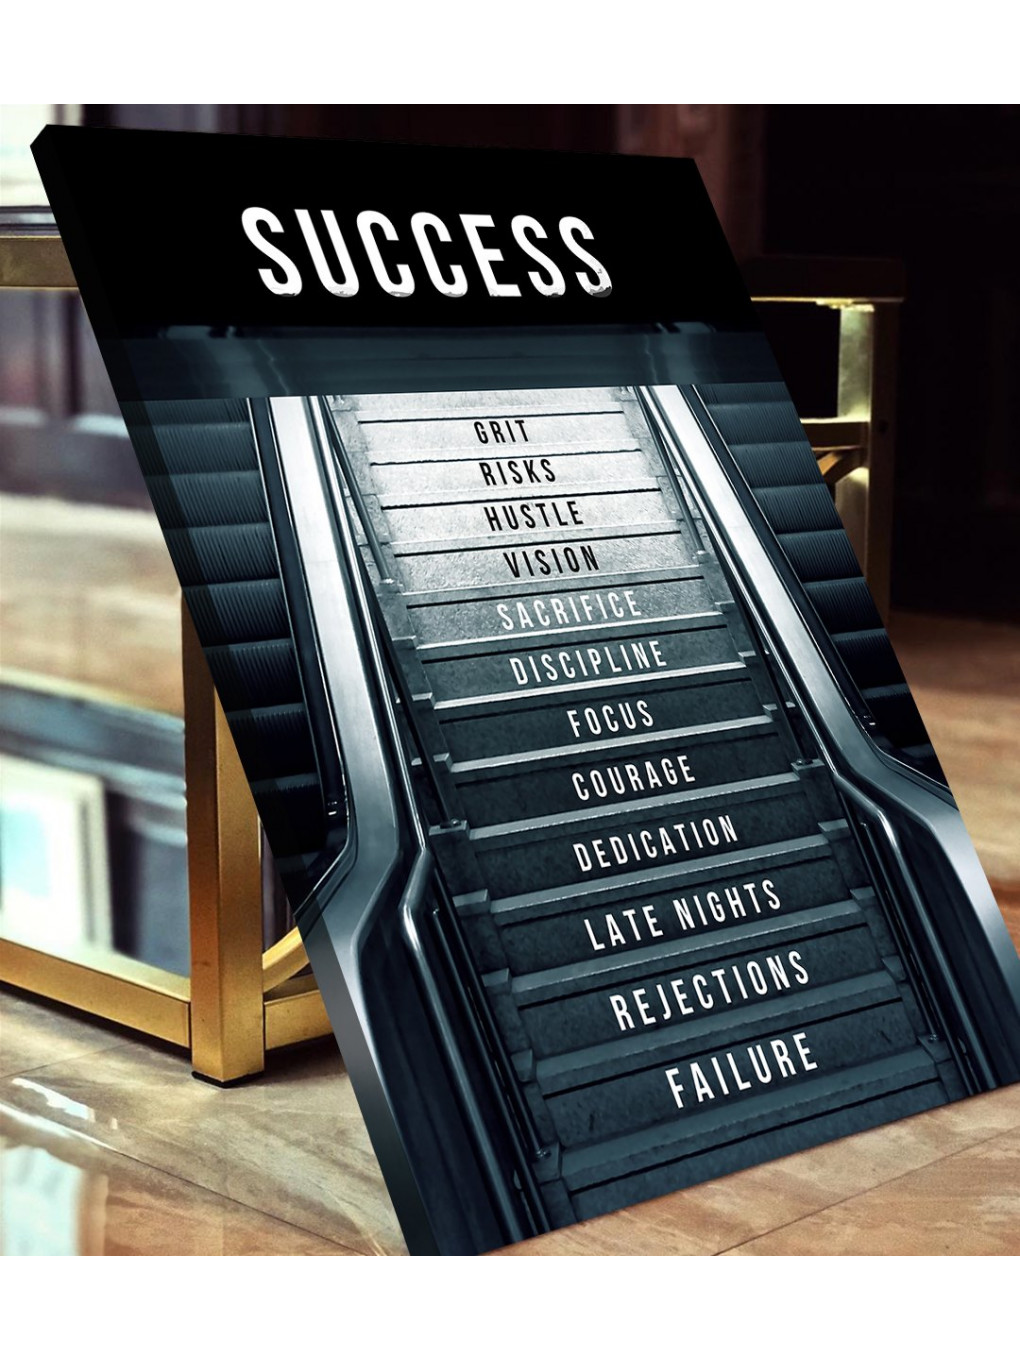 Take the Stairs - Success_SUC084_1